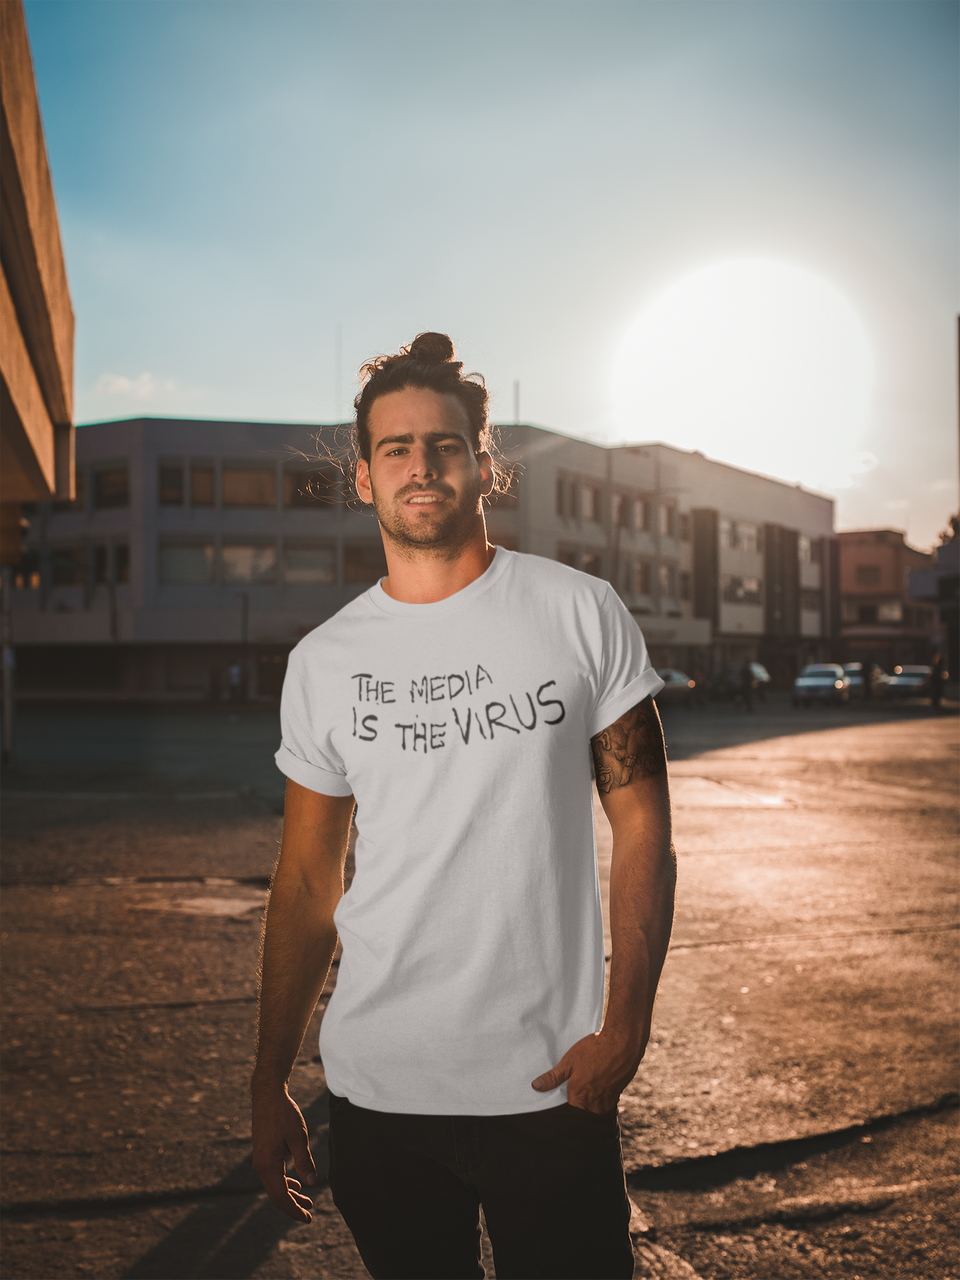 mockup-of-a-man-wearing-a-t-shirt-with-roll-up-sleeves-on-the-street-a19933_1024x1024@2x.png